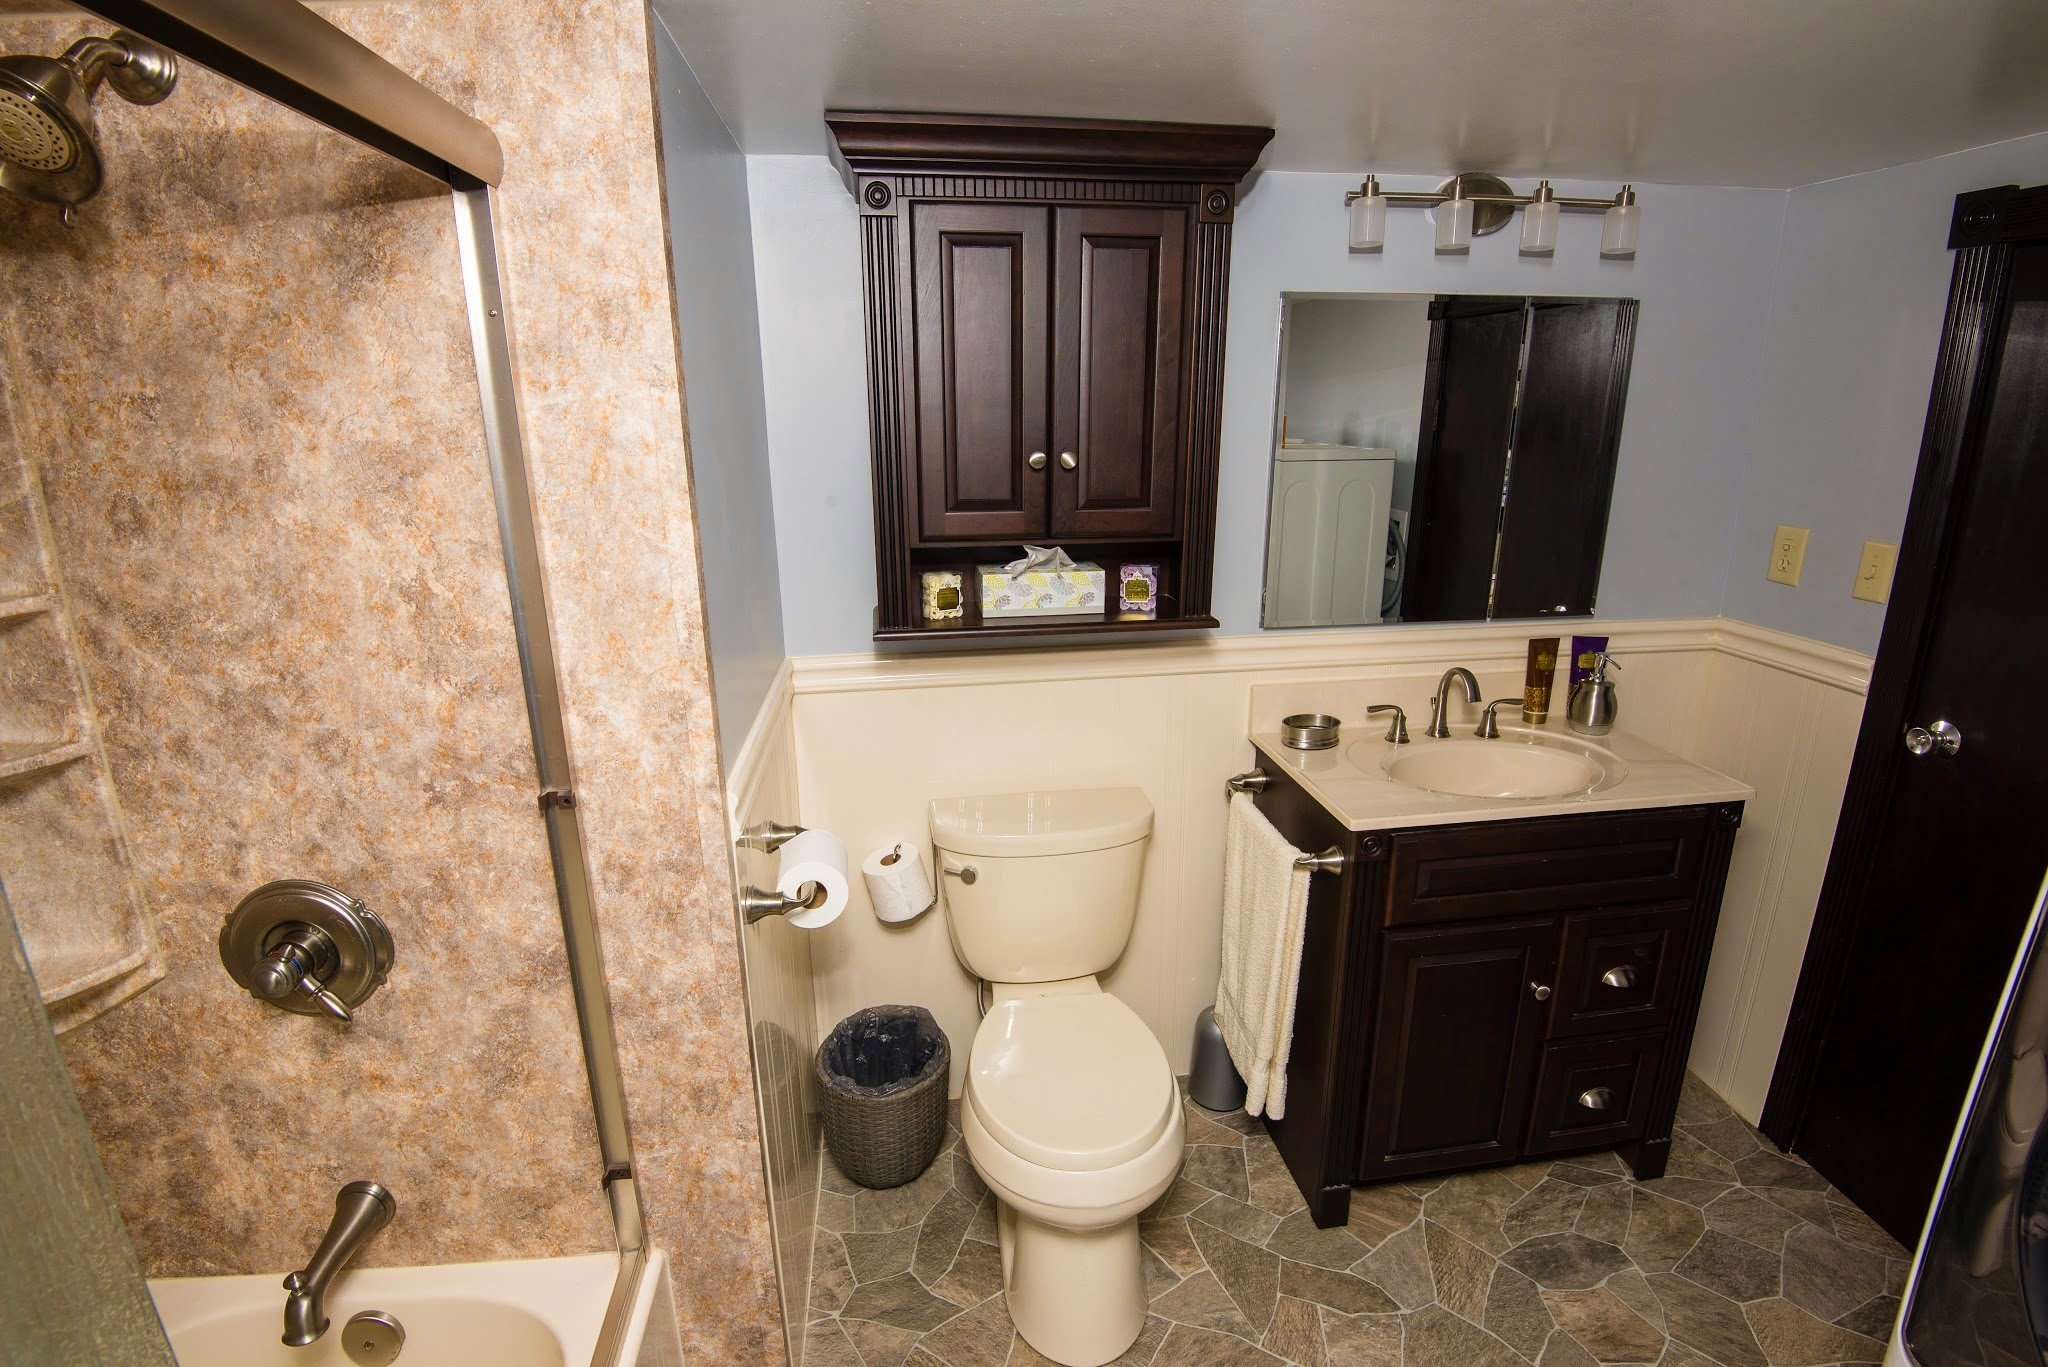 Did you know New York Sash does Bathroom Remodeling?